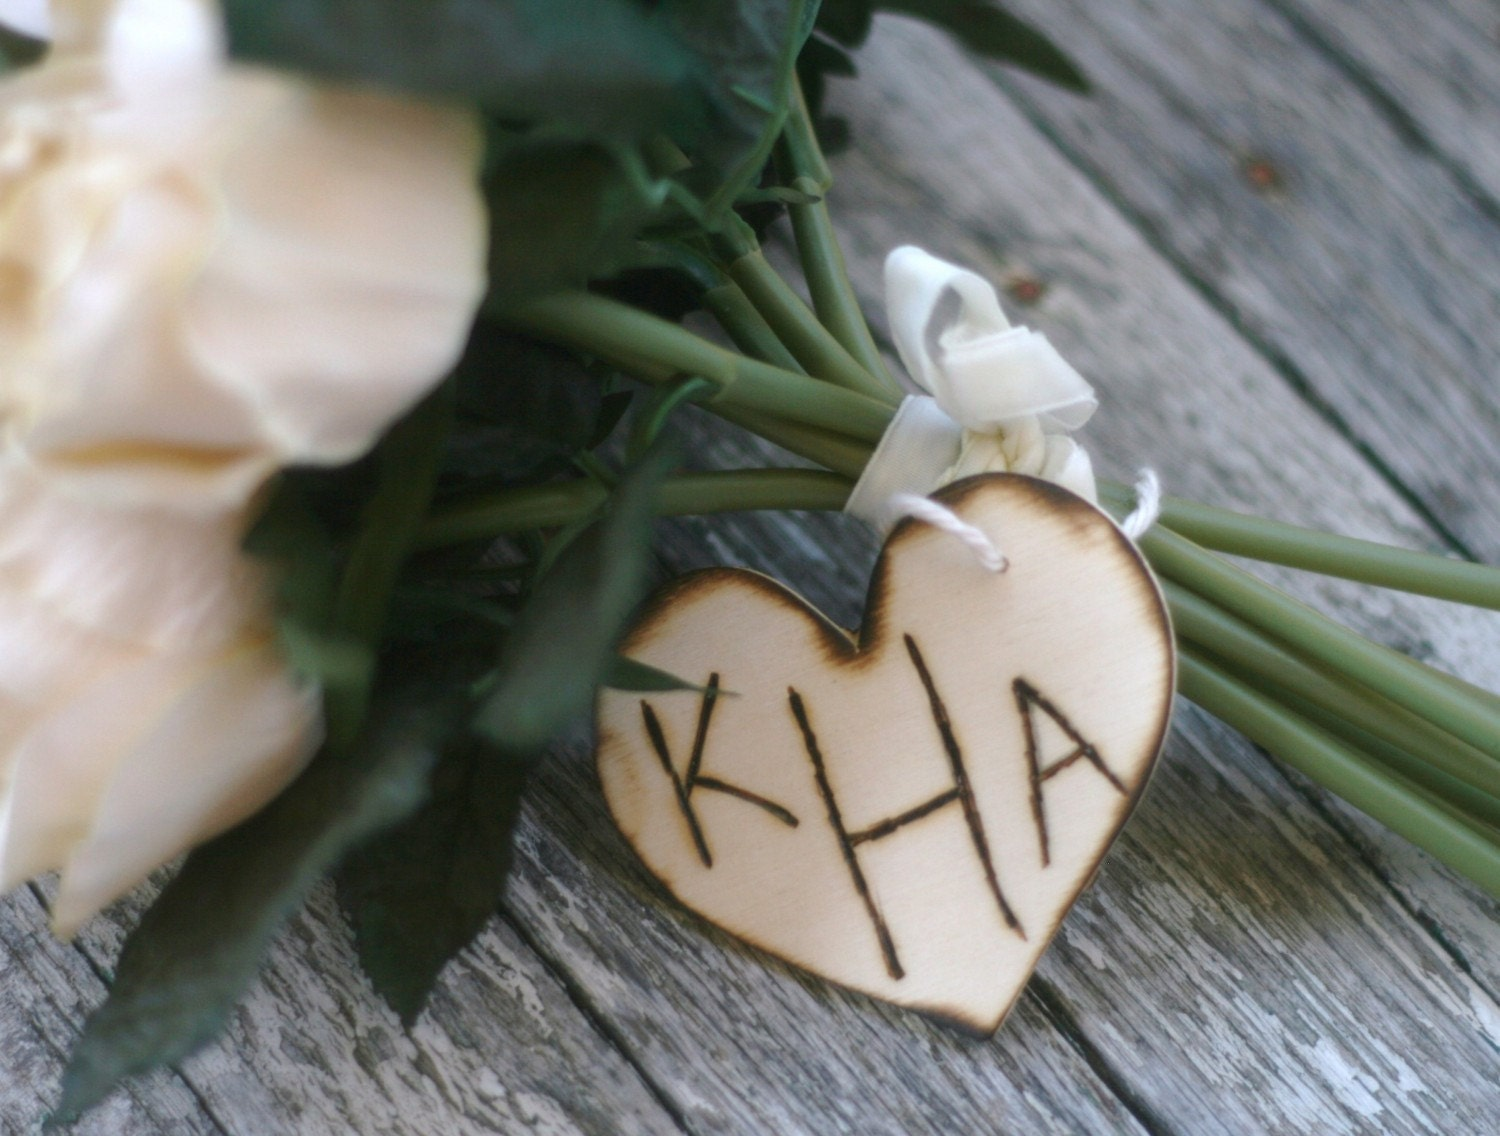 Personalized Monogrammed Wood Heart Wedding Bouquet Charm Sign Rustic Cinderella Renaissance Fairytale Wedding Decoration